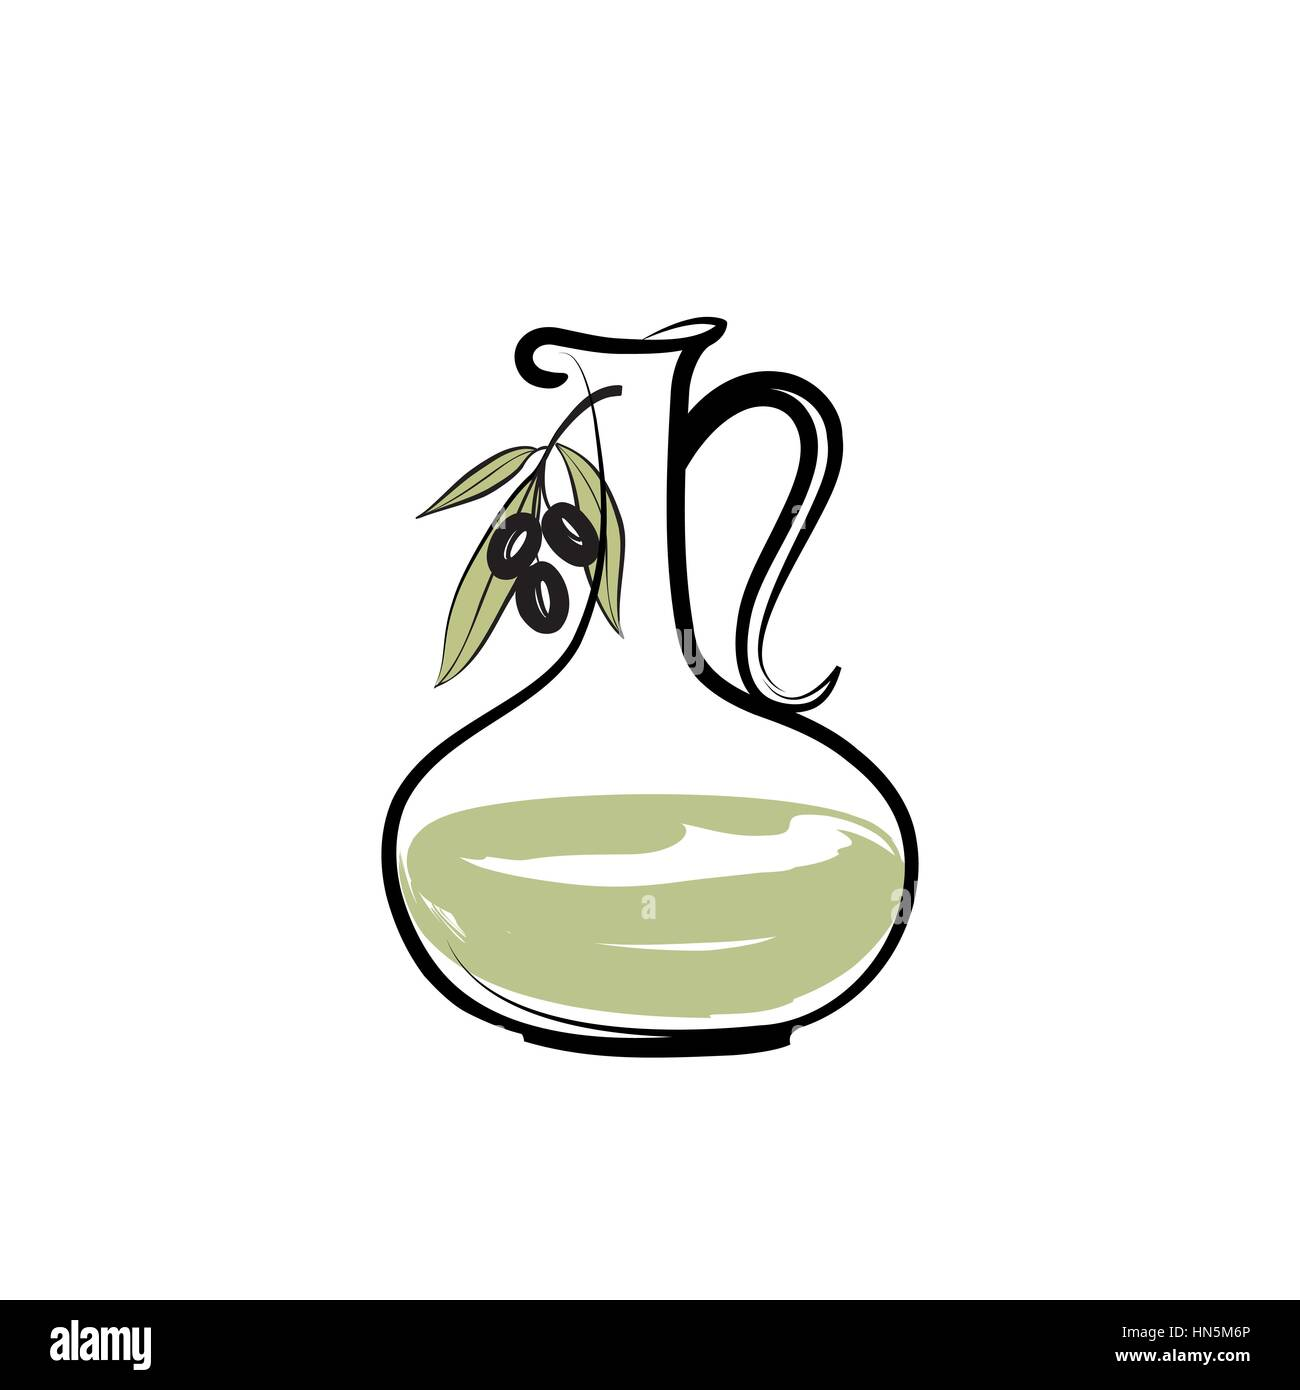 Olive oil bottle. Olives design over white background - Stock Vector